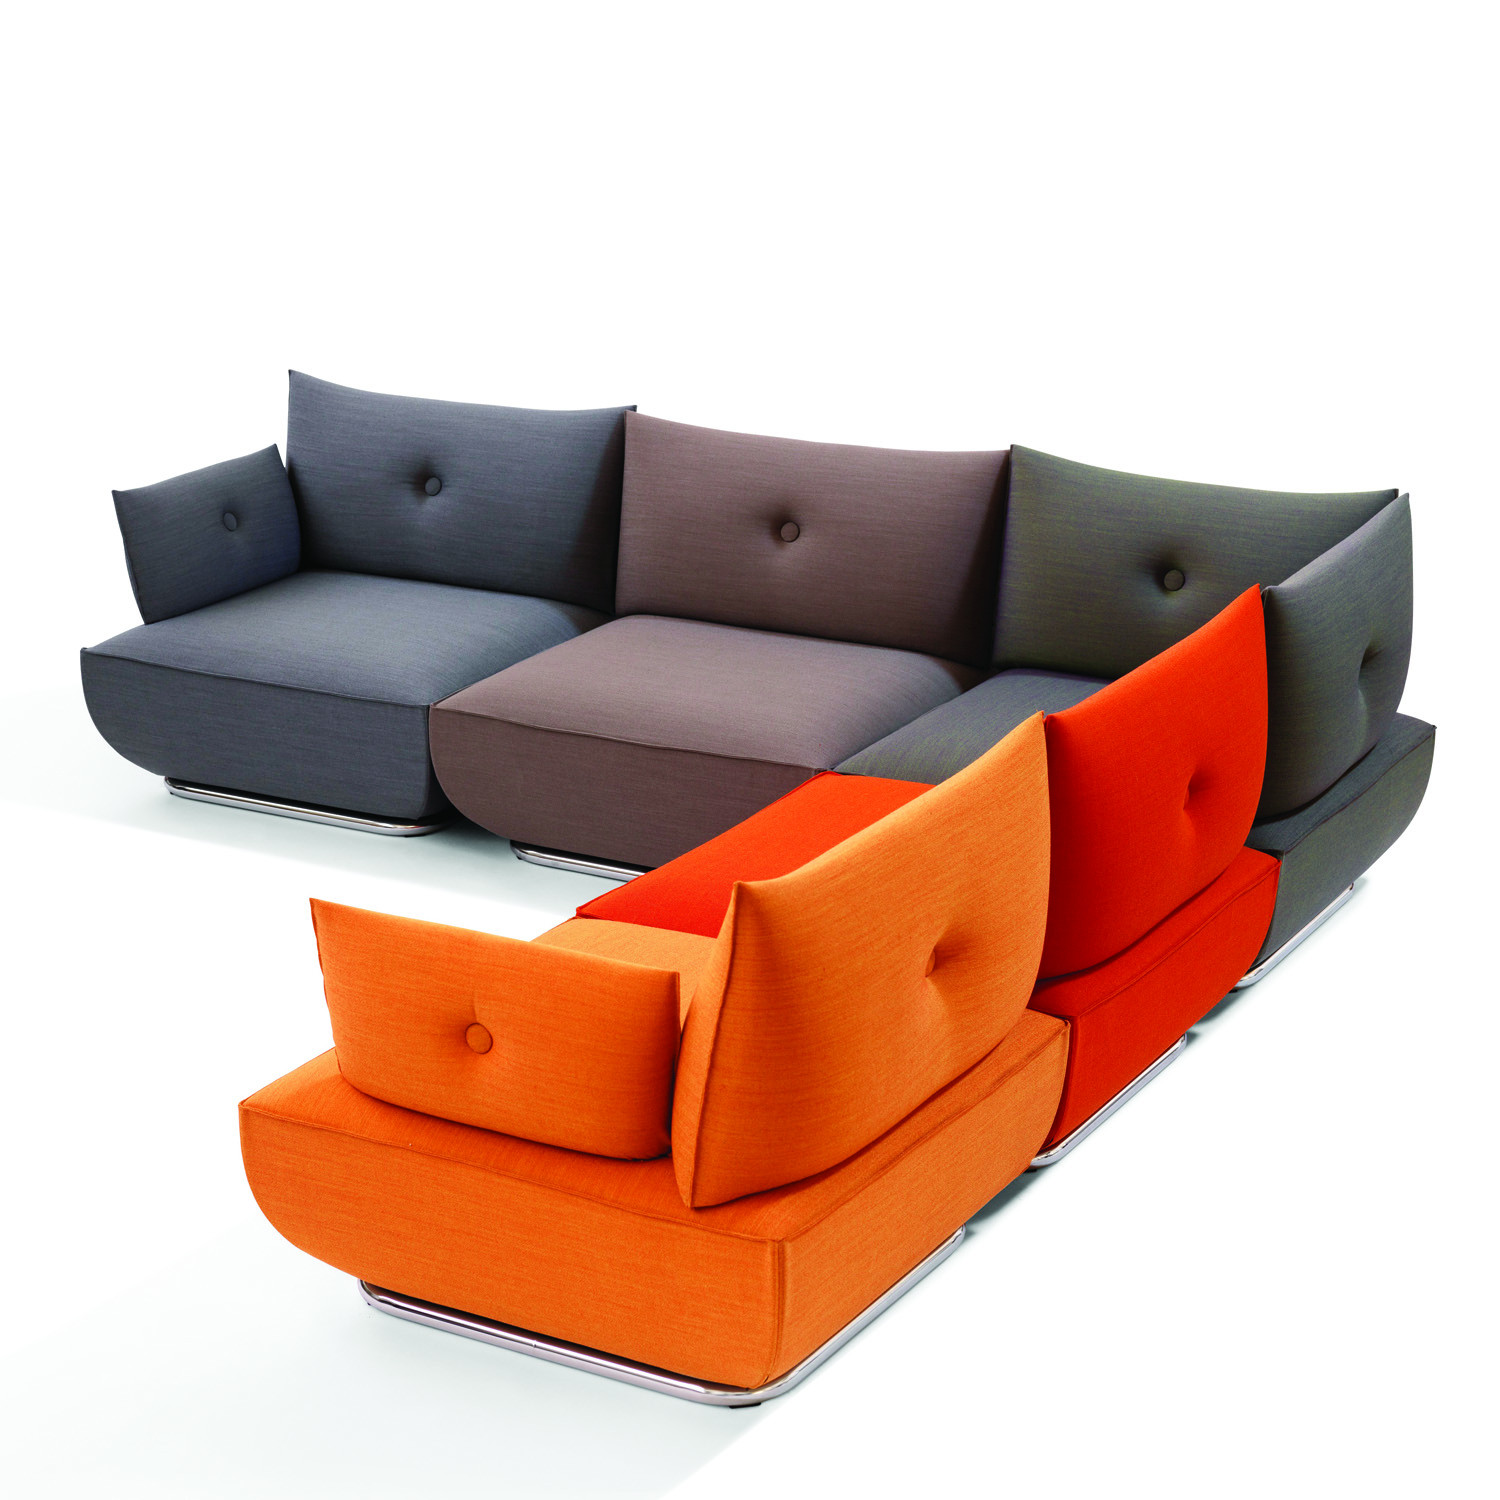 Modular Sofas Delux Deco UK Vitra Soft Sofa Mix